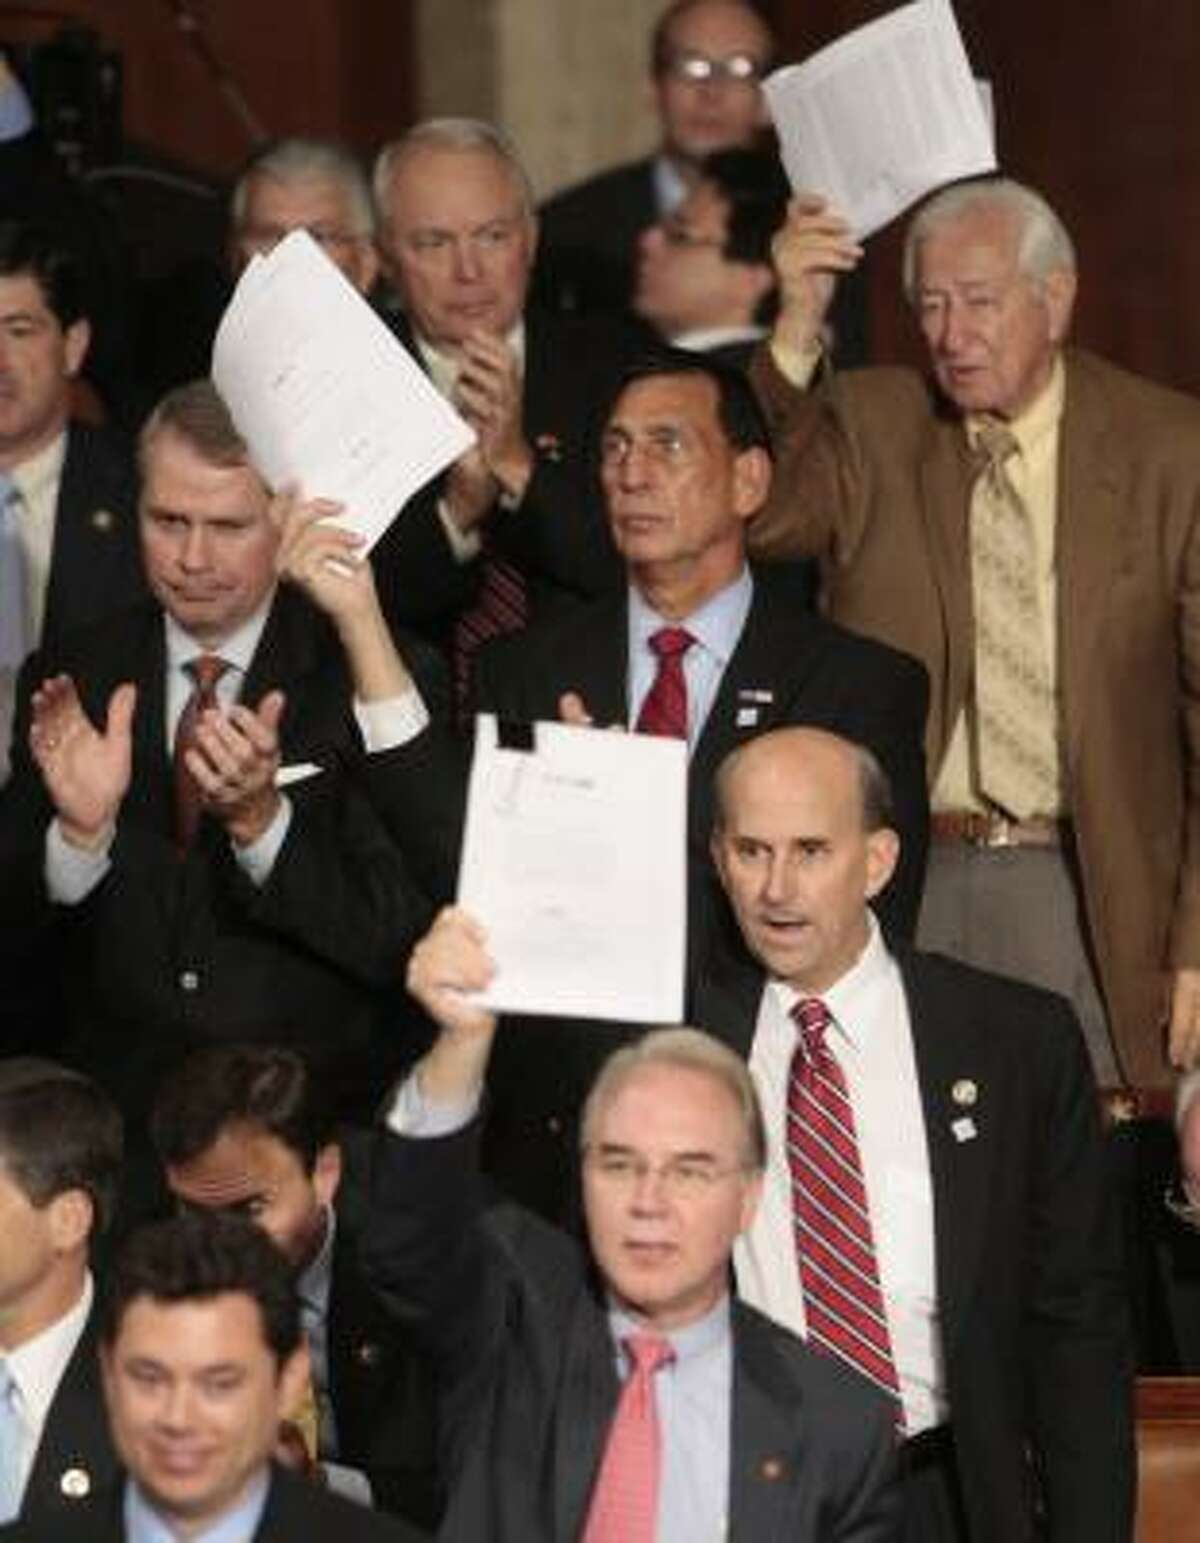 Republican House members wave copies of their health care bill as Obama delivers his speech.